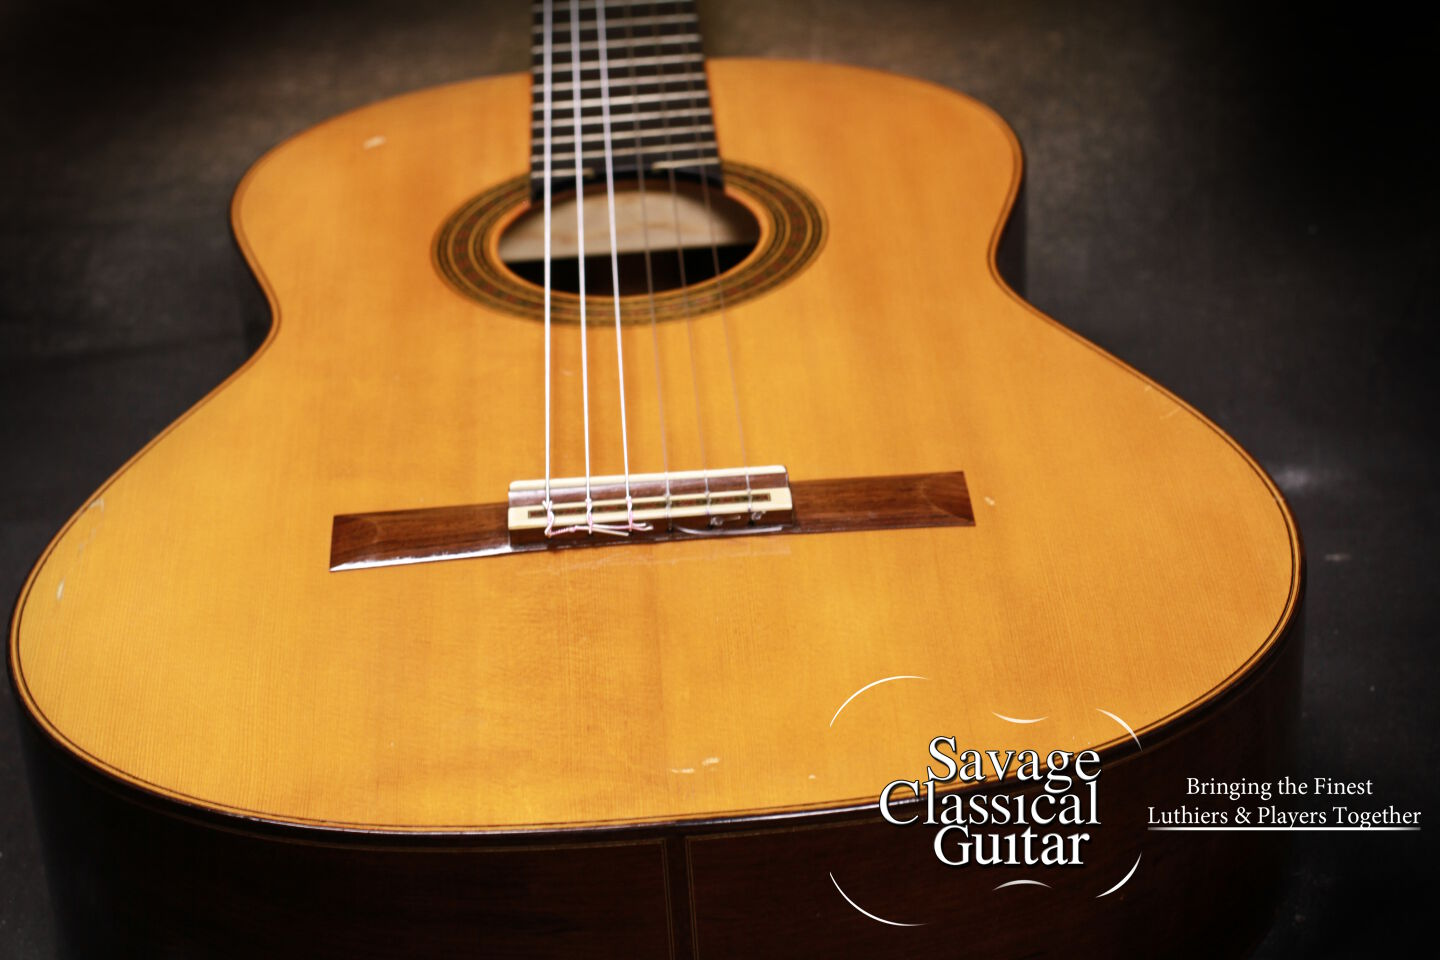 daniel friederich classical guitar for sale by savage classical guitar. Black Bedroom Furniture Sets. Home Design Ideas